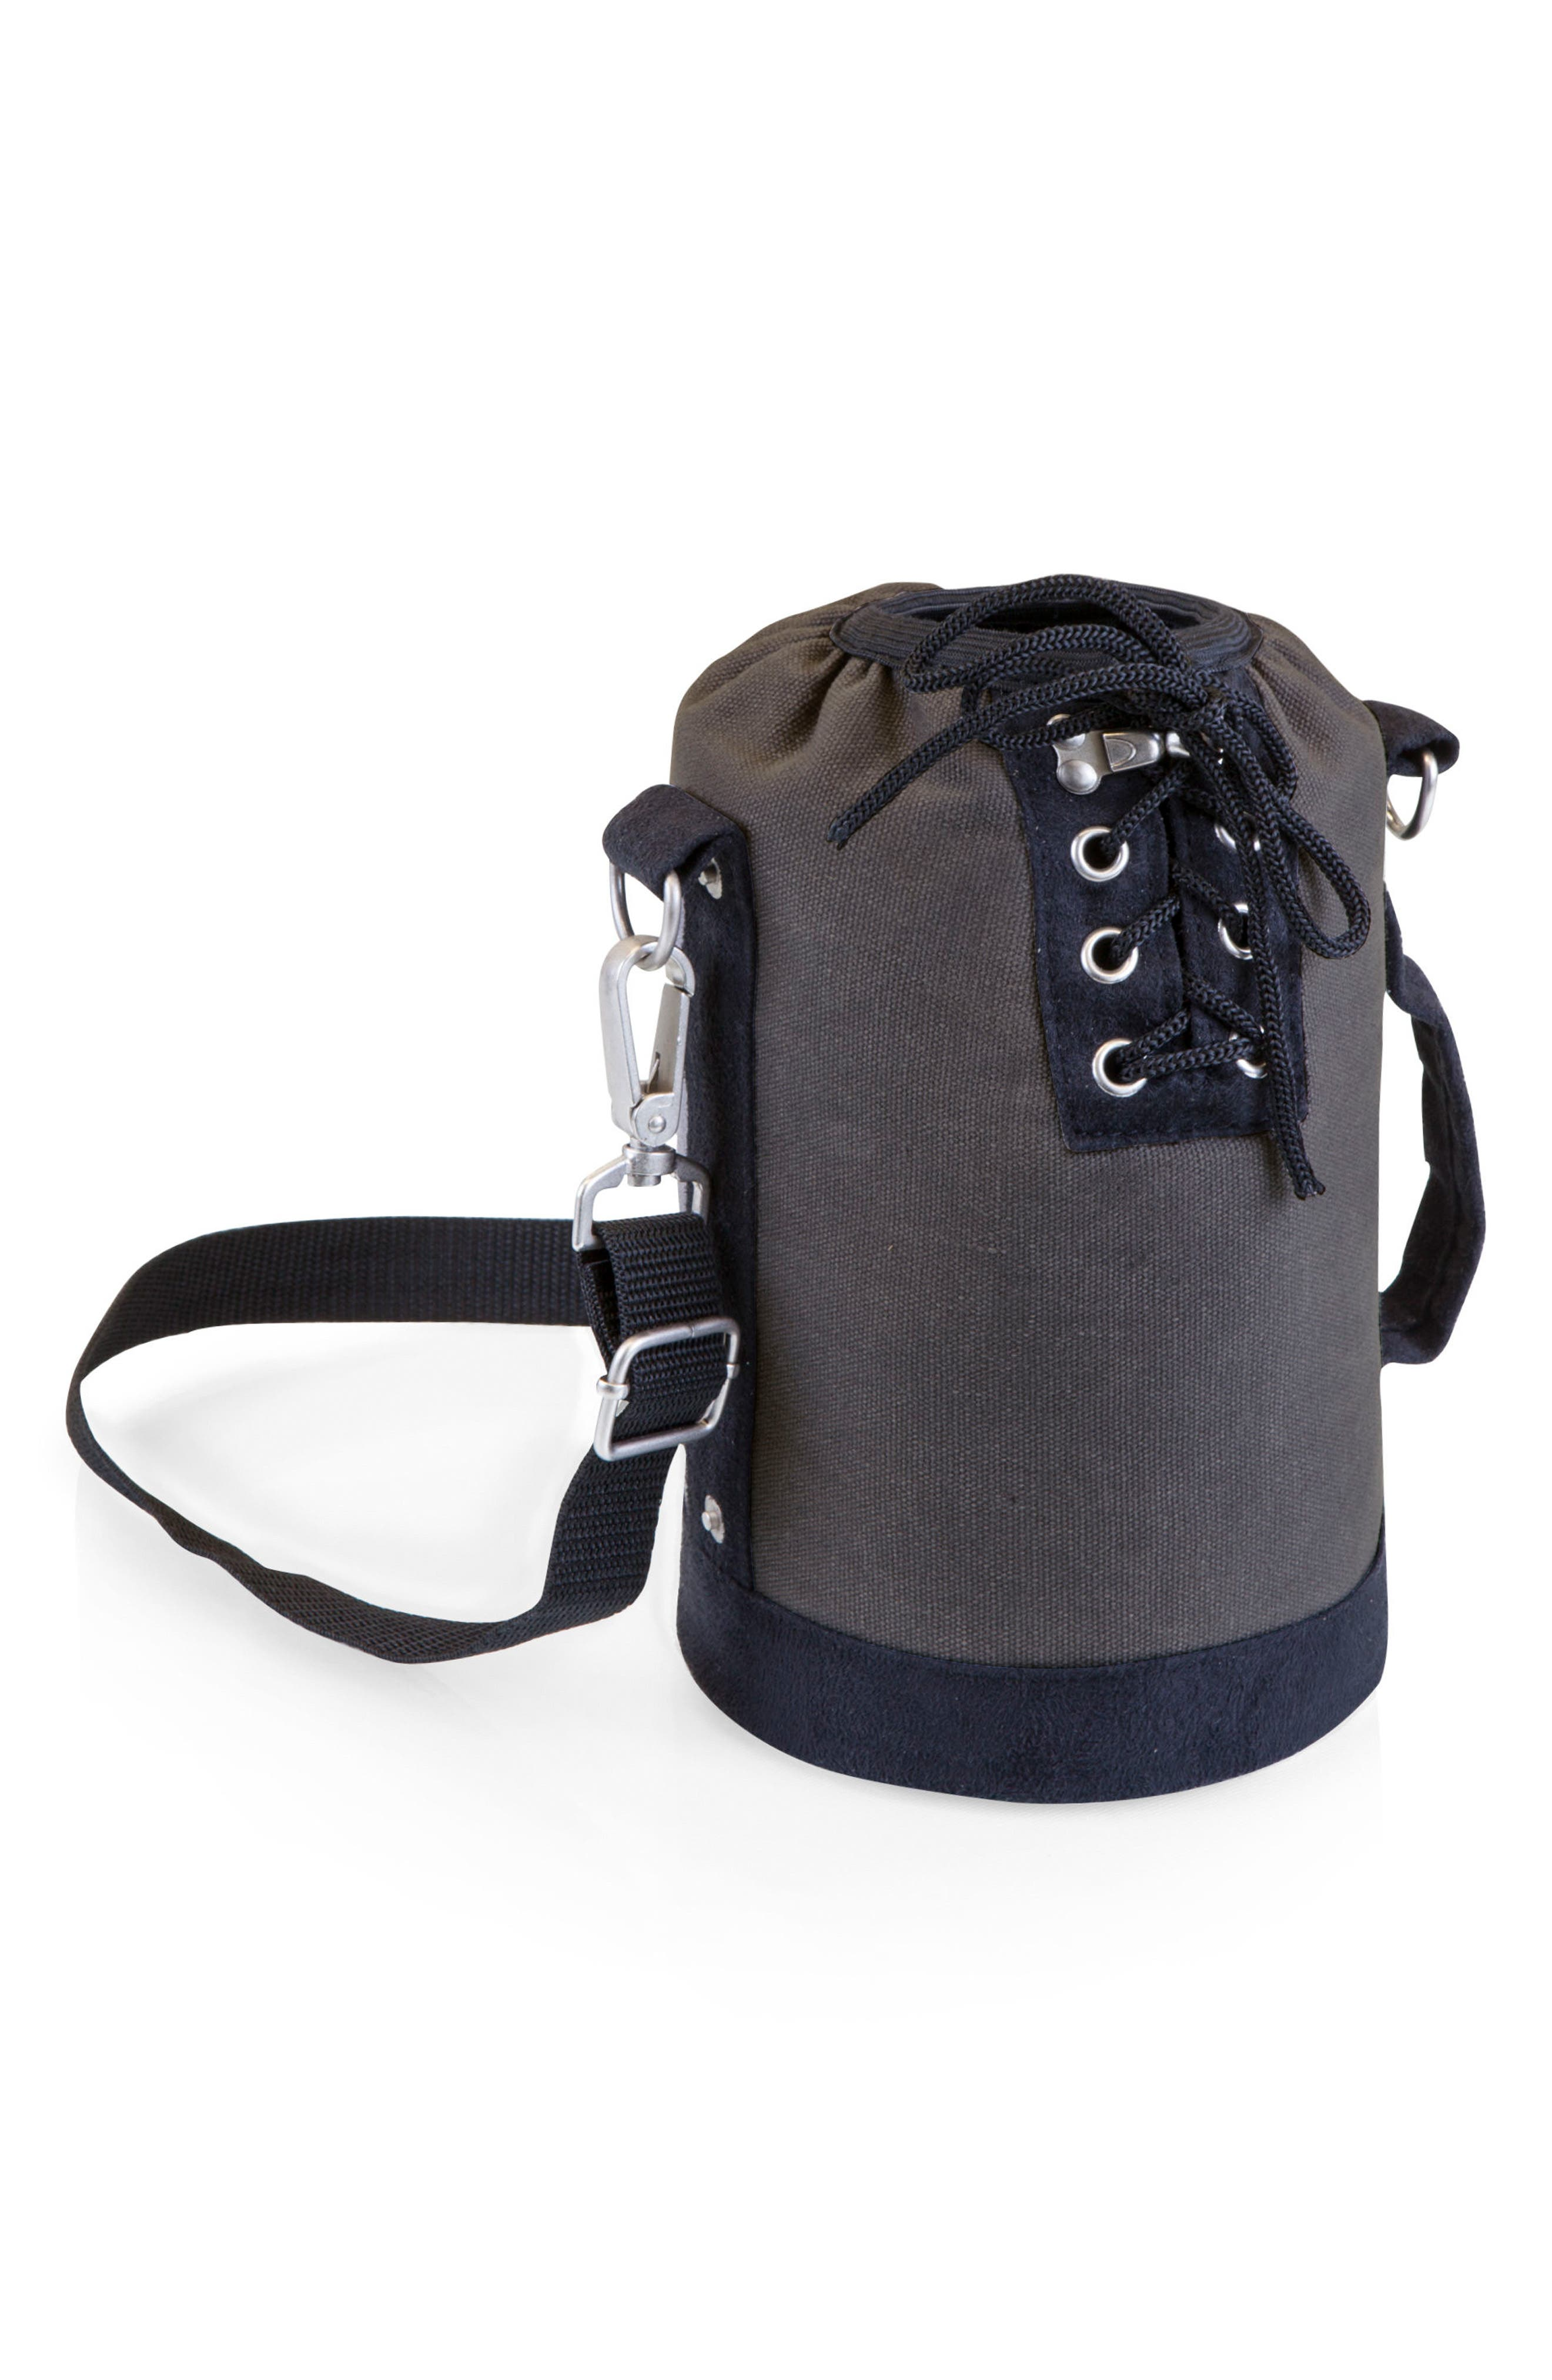 Alternate Image 1 Selected - Picnic Time Insulated Growler Tote